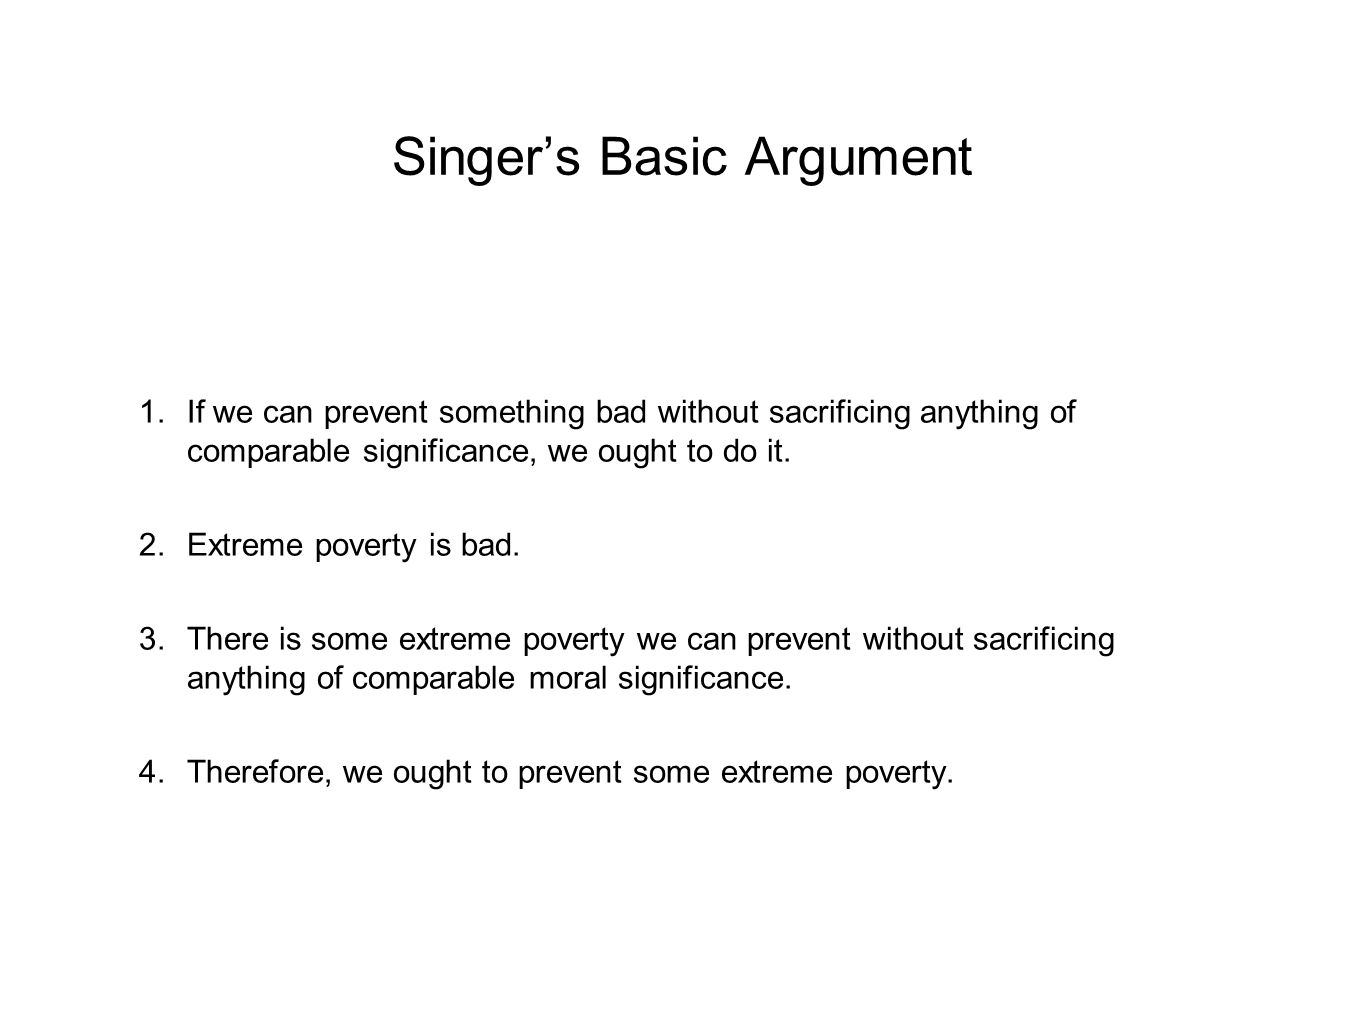 Singer's Basic Argument 1.If we can prevent something bad without sacrificing anything of comparable significance, we ought to do it.